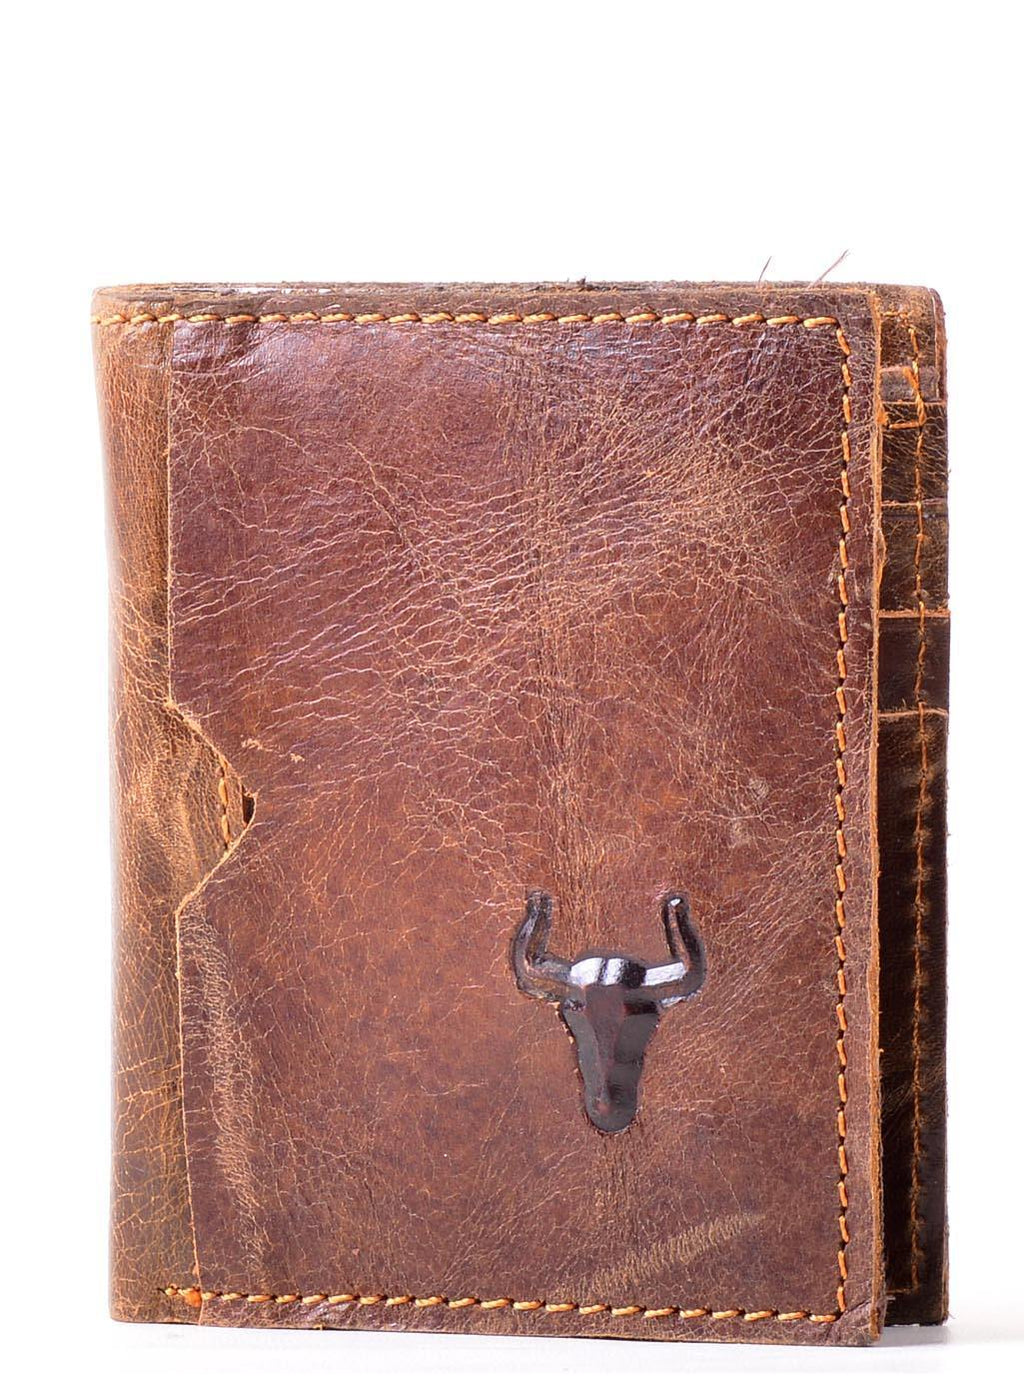 EthniCache Wallet Sophisticated Handmade Pure Leather Wallet